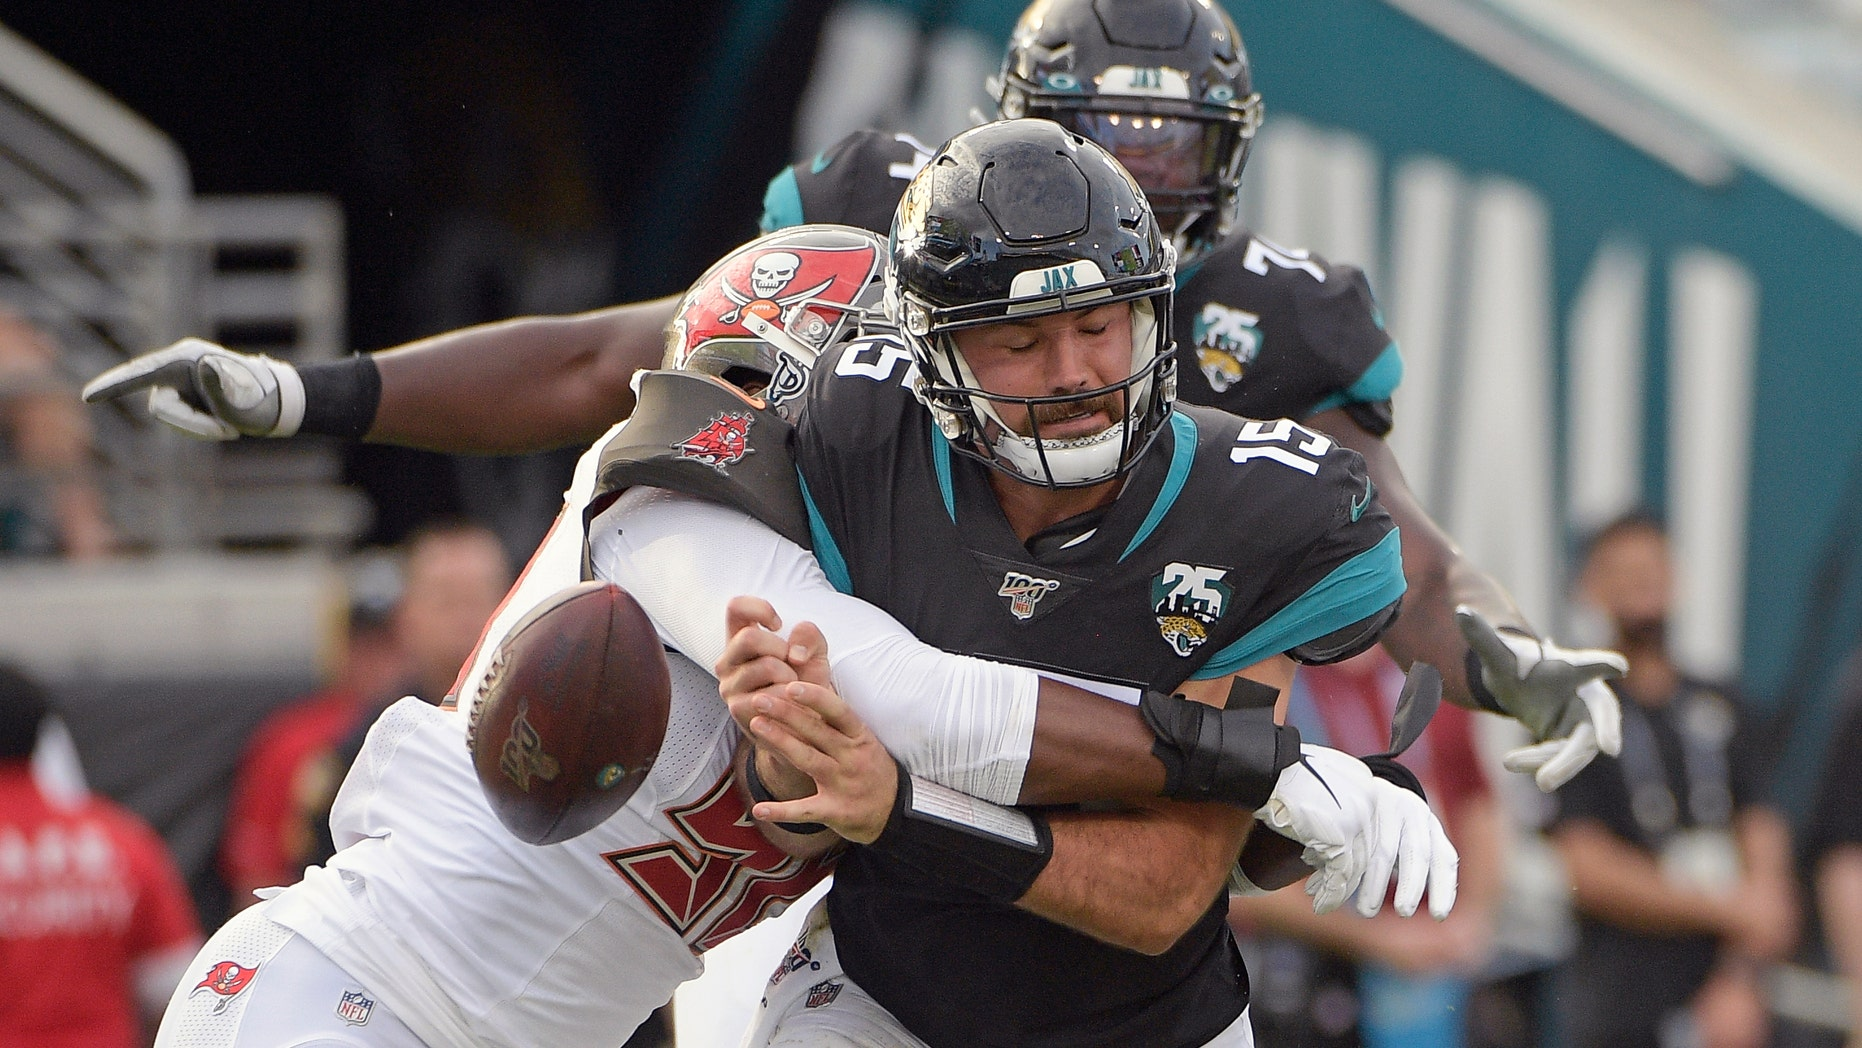 Westlake Legal Group Gardner-Minshew Jaguars switching back to rookie QB Minshew amid 4-game skid fox-news/sports/nfl/jacksonville-jaguars fox-news/sports/nfl fox-news/person/nick-foles fnc/sports fnc Associated Press article 66e97bad-82de-5732-b8be-df62d0ee8dc8